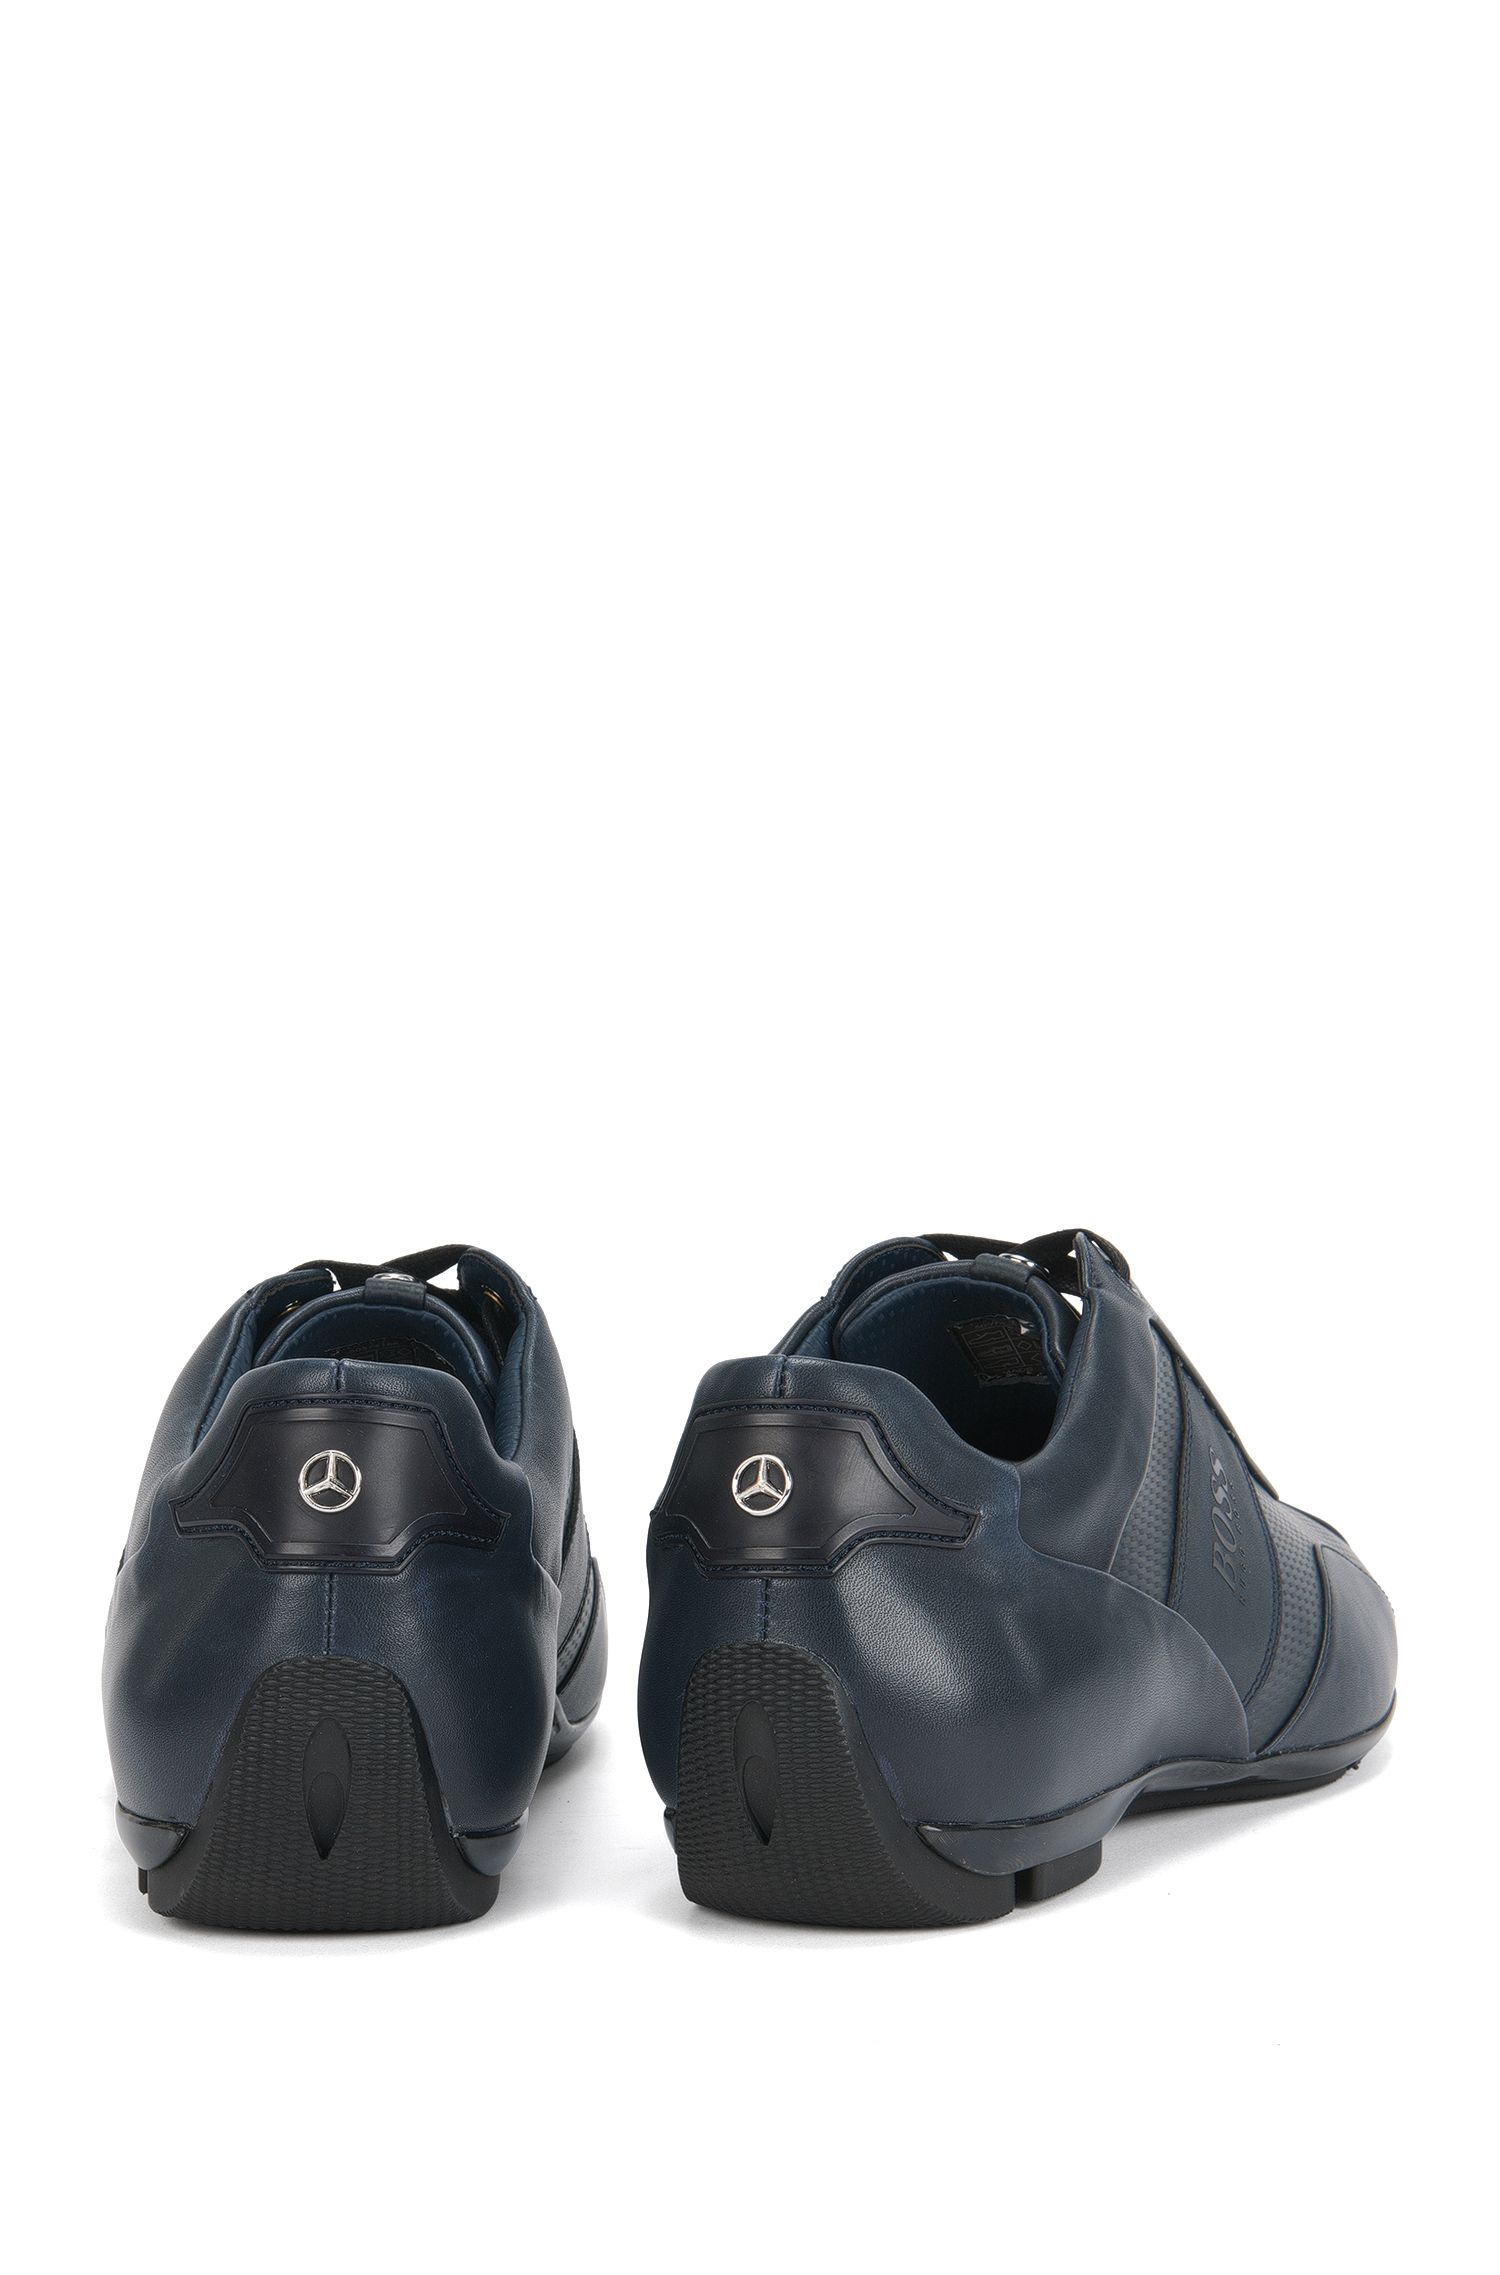 Mercedes-Benz Leather Sneaker   Sporty Lowp Mcmb